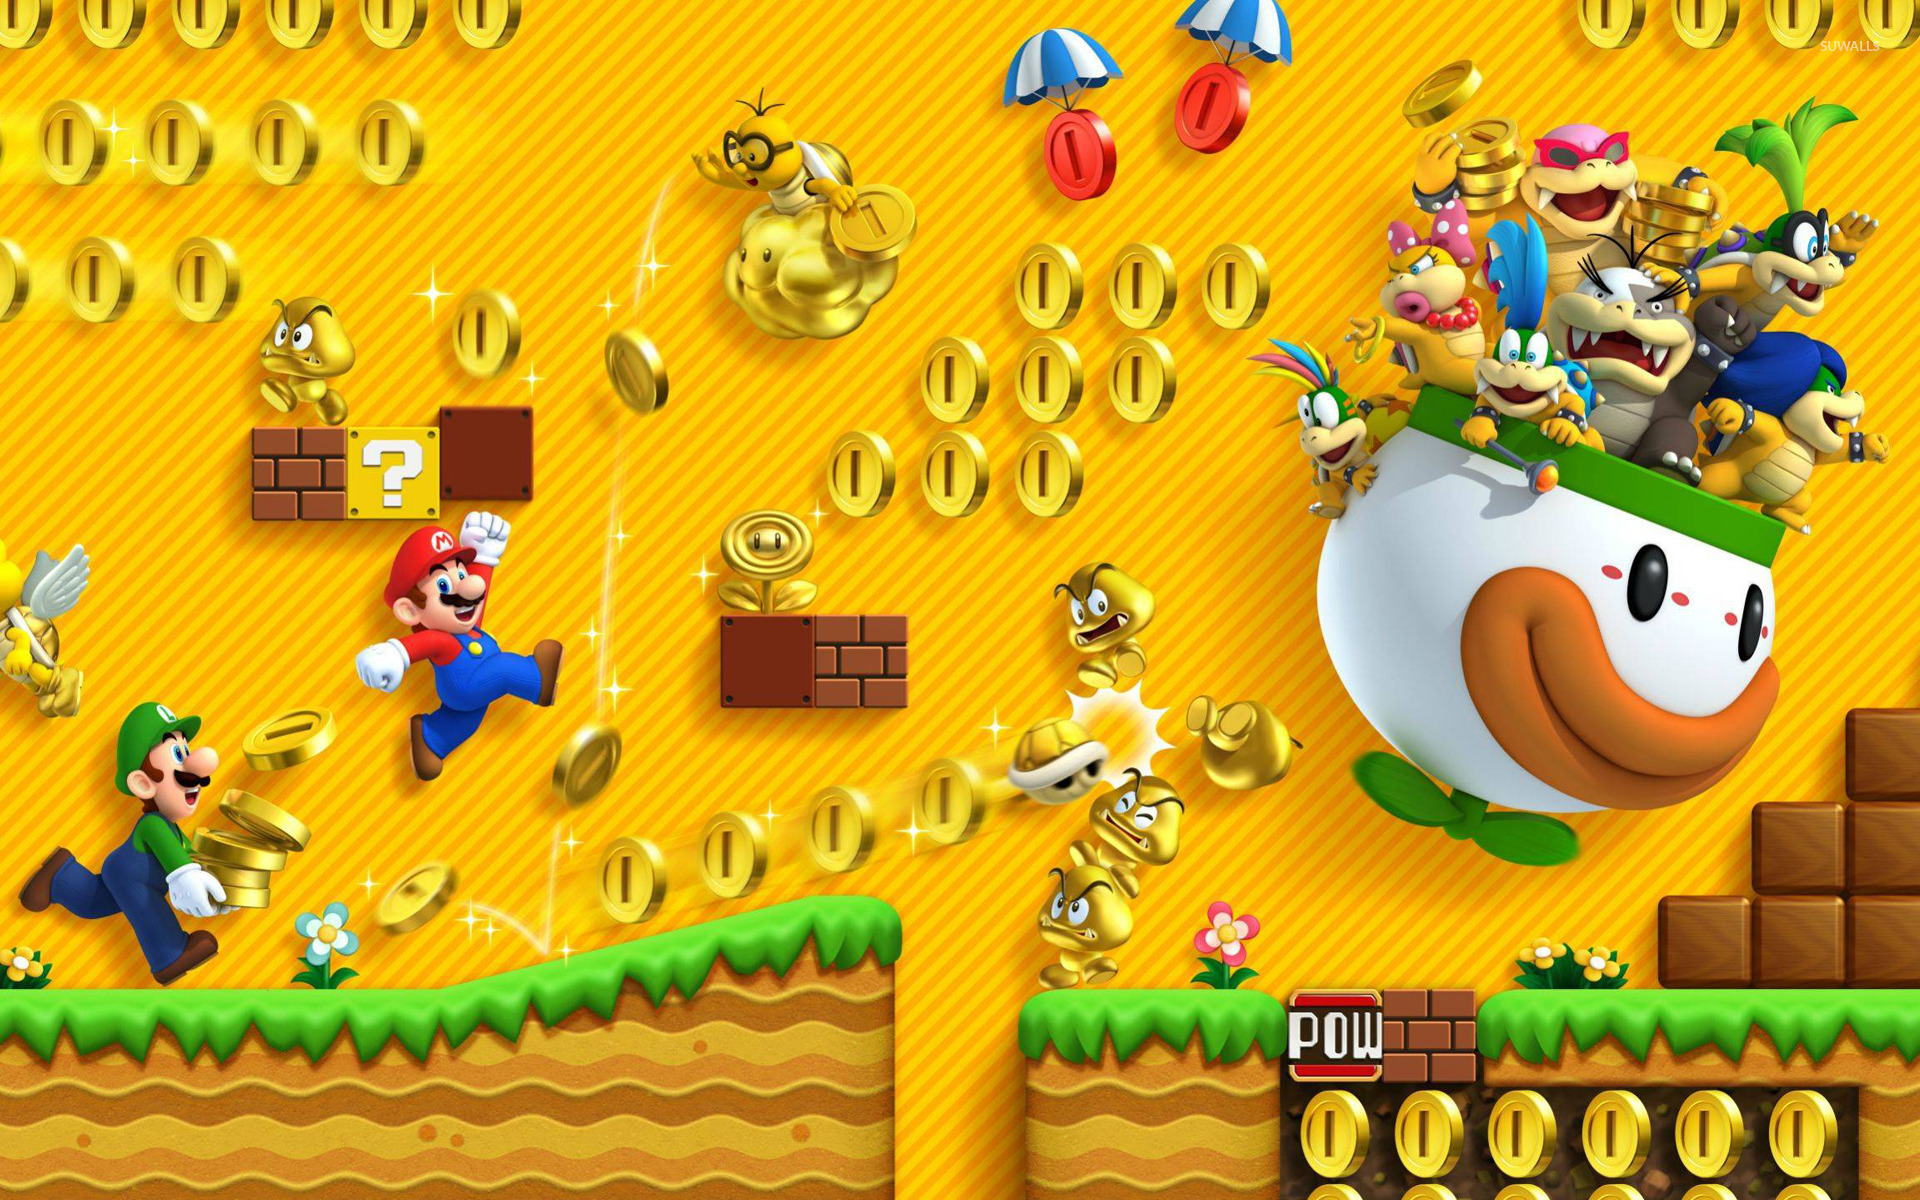 Super Mario Bros 2 Wallpaper Game Wallpapers 14849